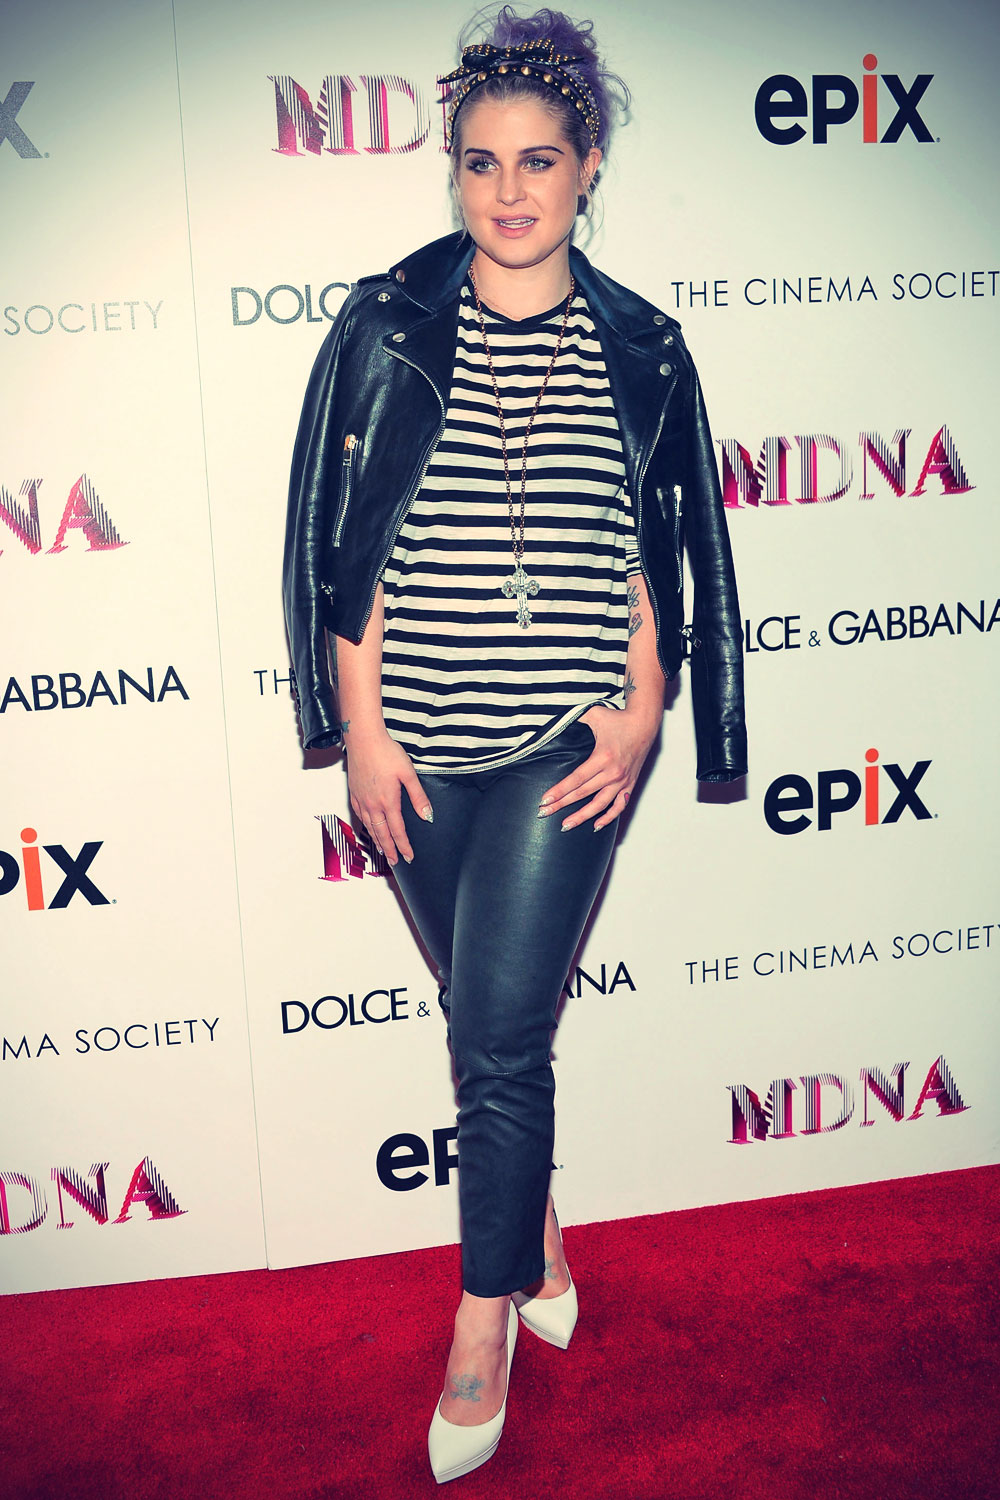 Kelly Osbourne Epix World Premiere of Madonna: The MDNA Tour